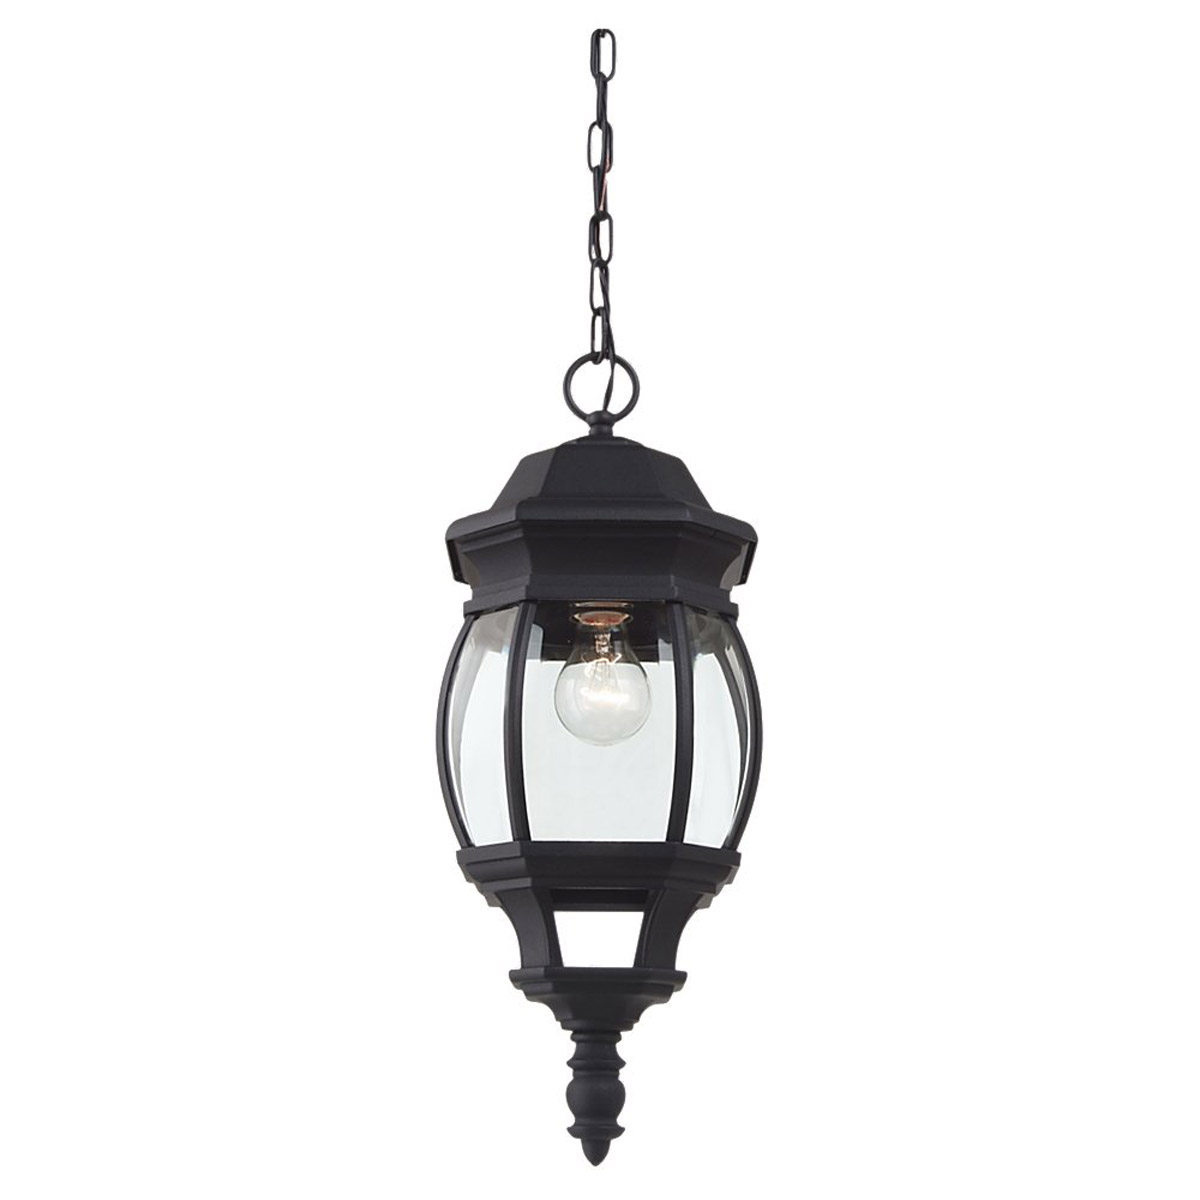 Sea Gull Lighting Wynfield 1 Light Outdoor Pendant in Black 60400-12